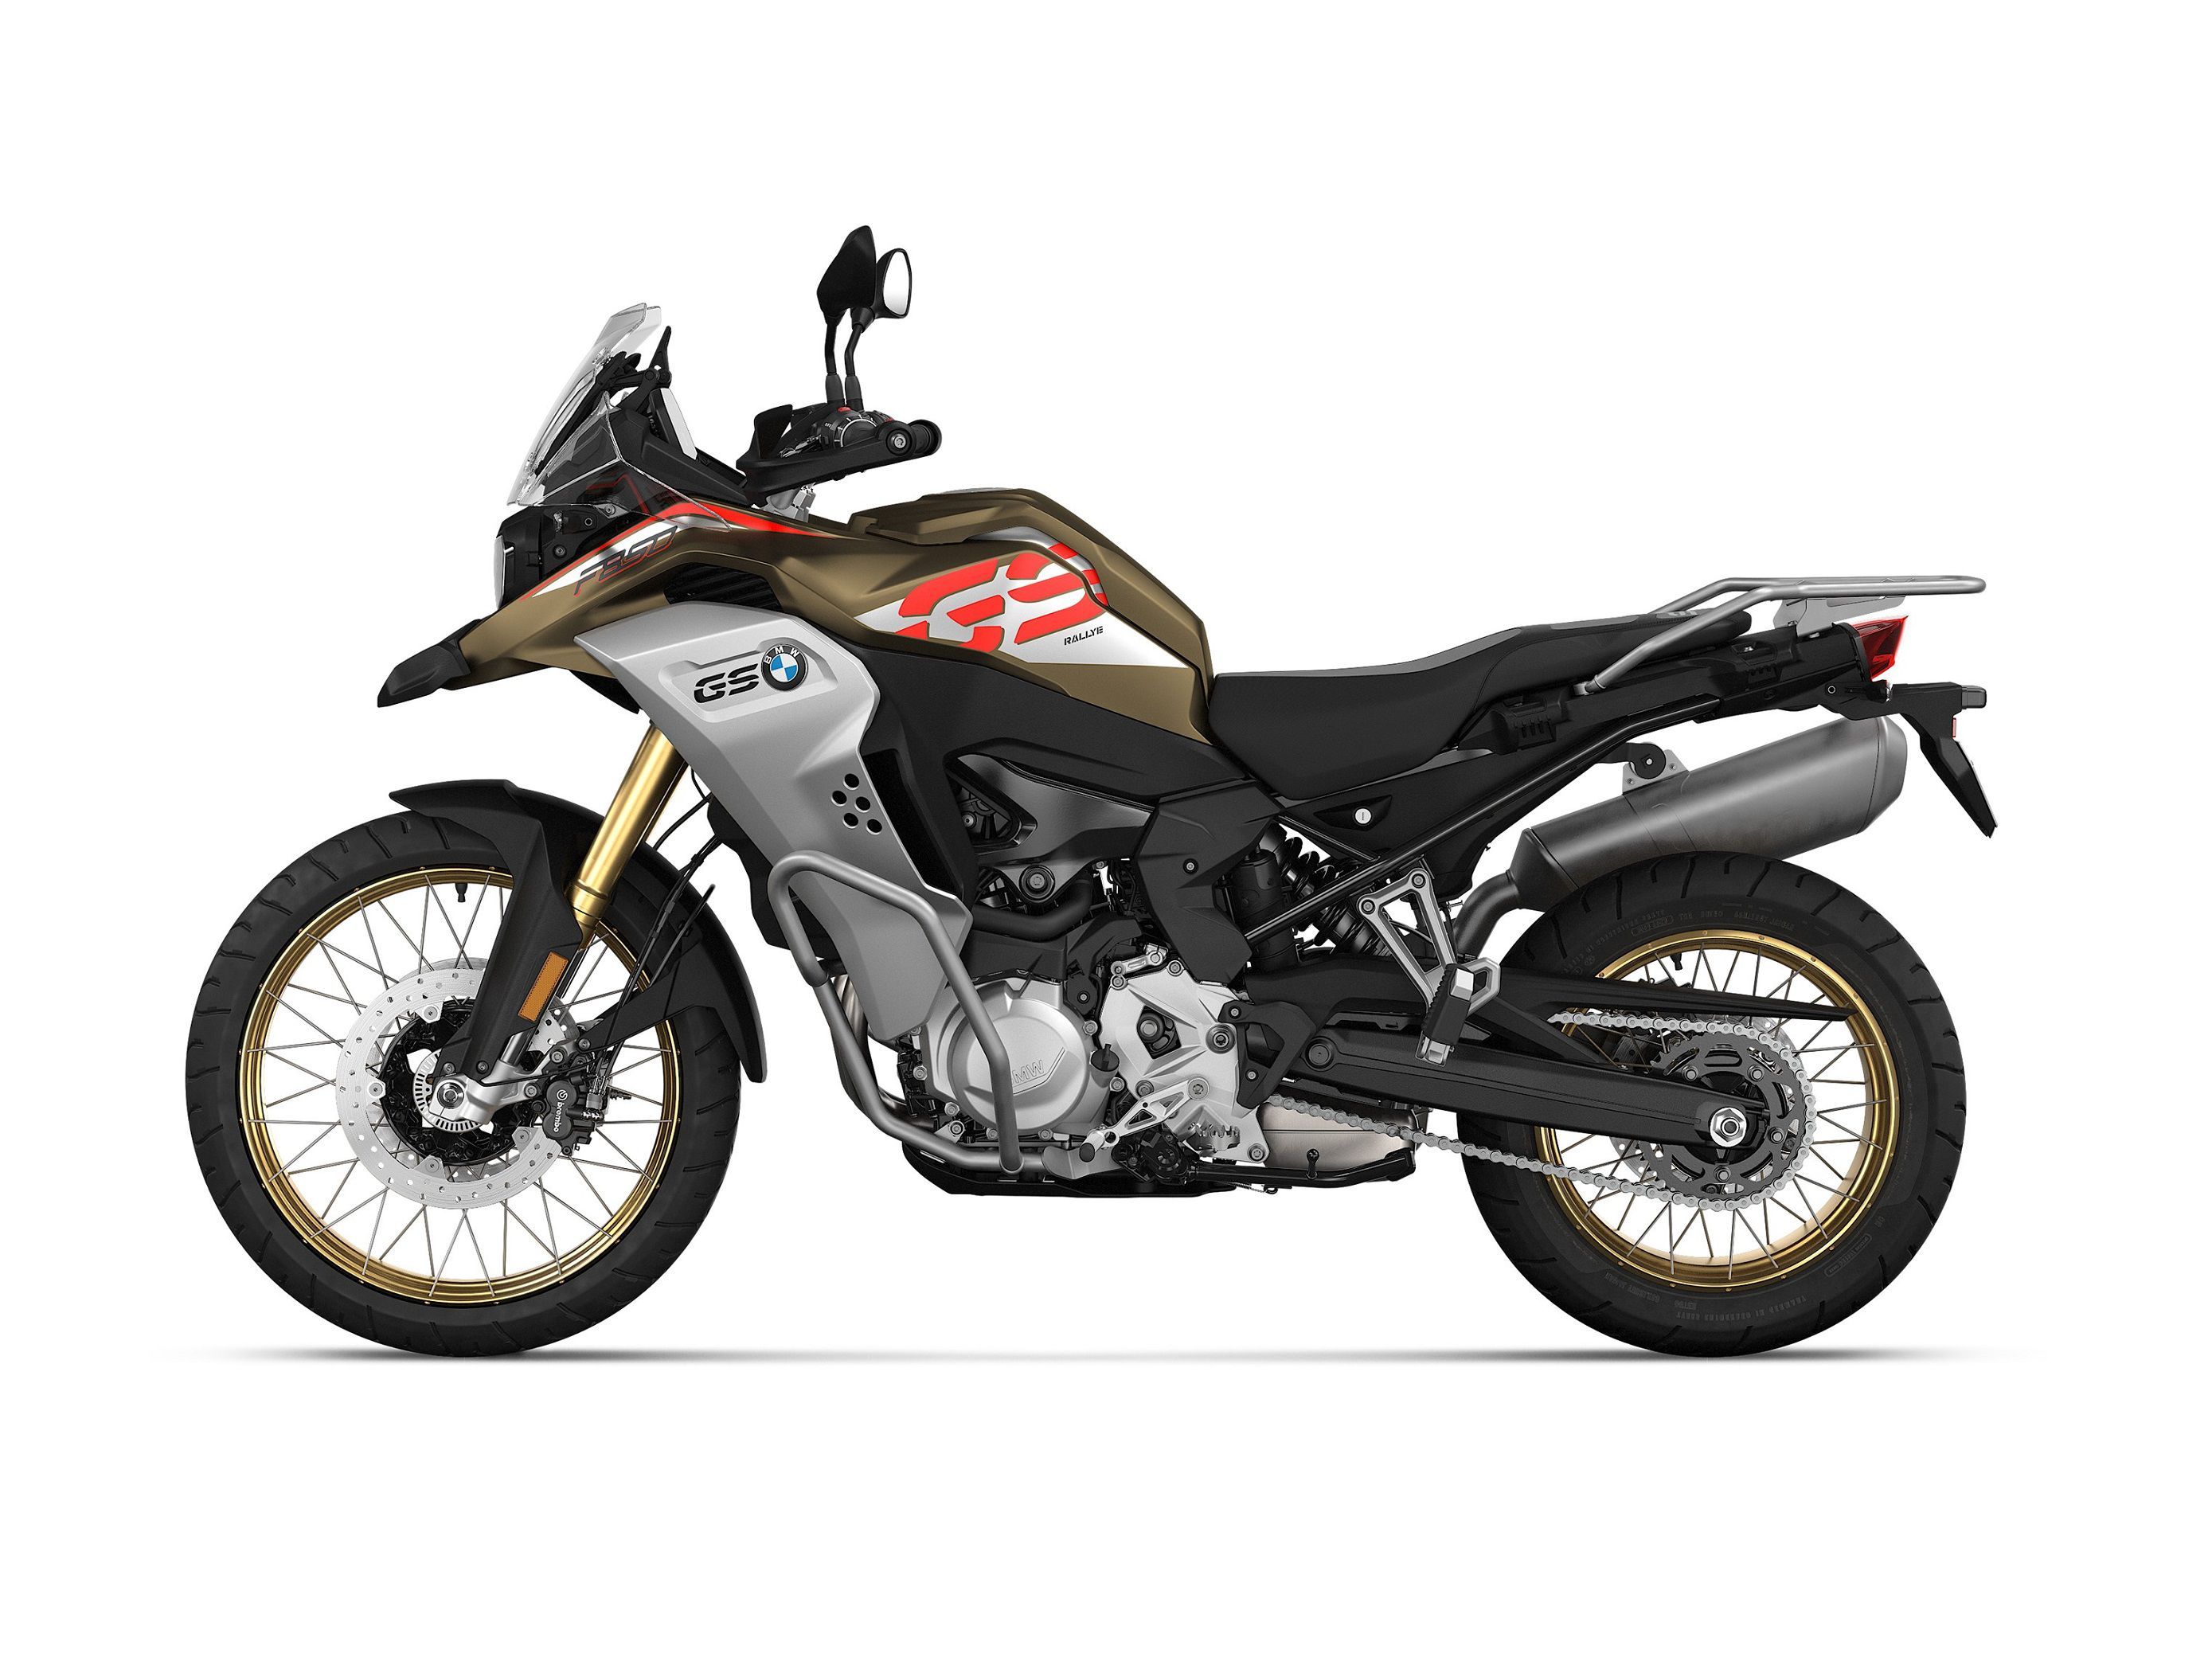 2021 bmw f 750 gs, f 850 gs, and f 850 gs adventure